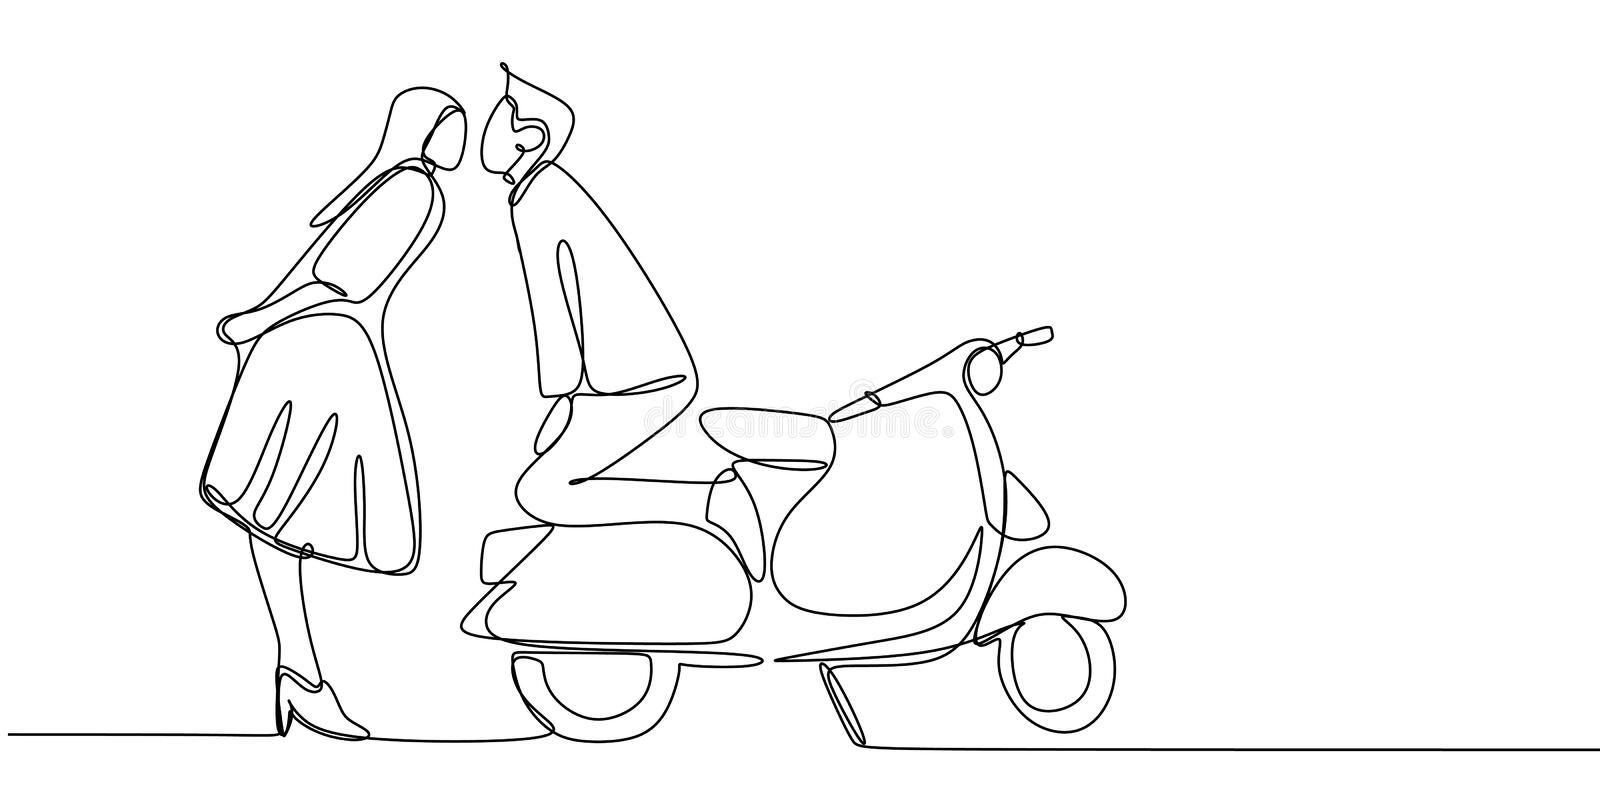 Continuous line drawing of a couple kiss with retro scooter motor bike. Vintage creative minimalist concept of romance stock illustration